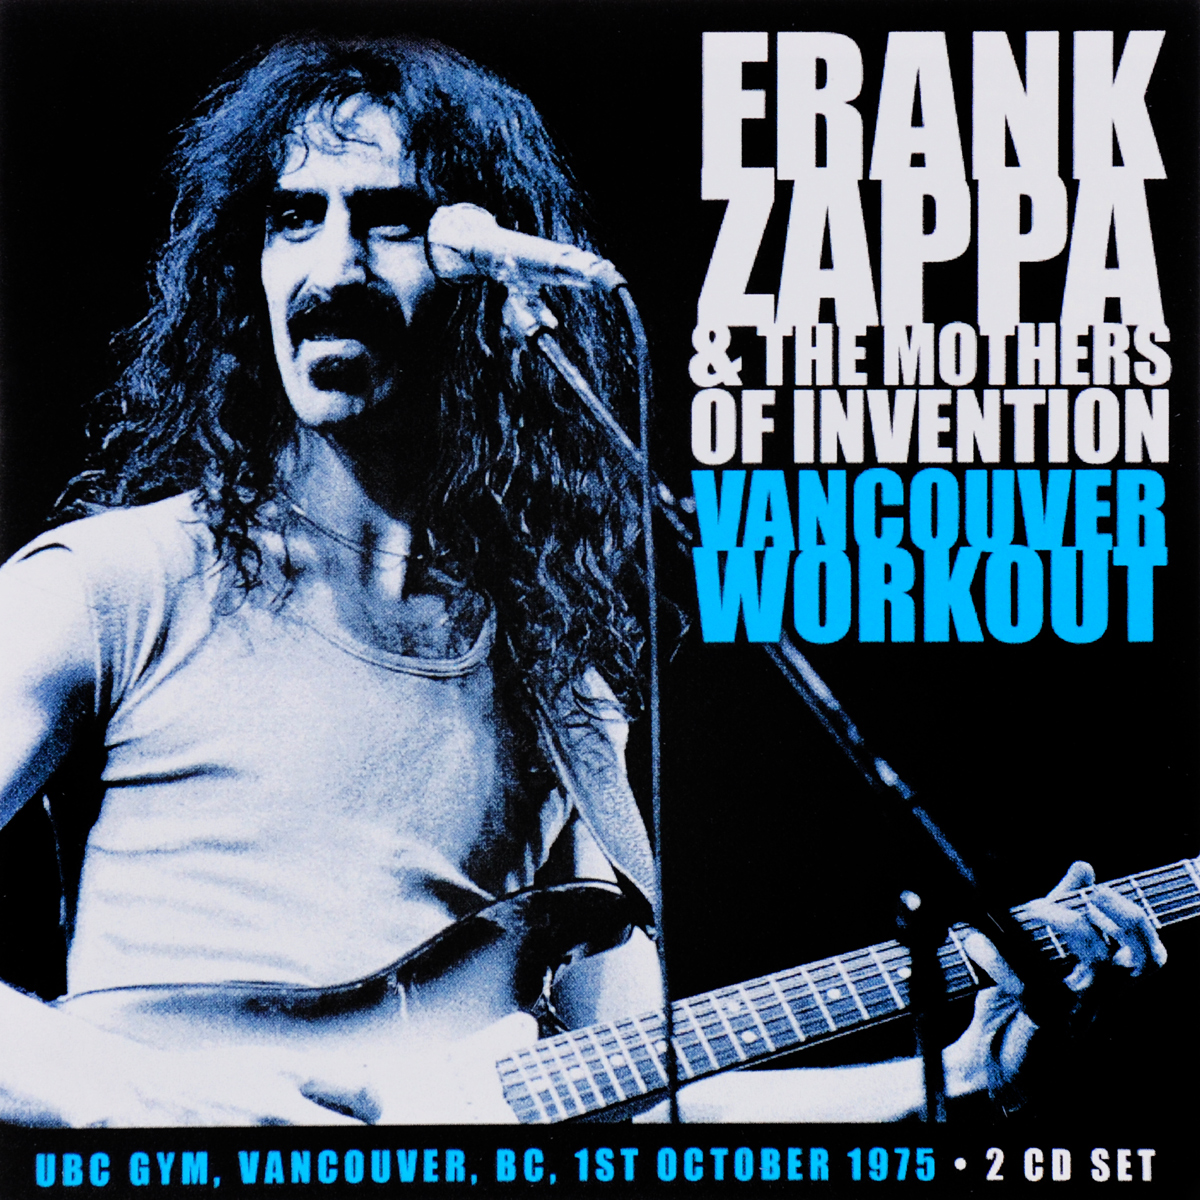 Фрэнк Заппа,The Mothers Of Invention Frank Zappa & The Mothers Of Invention. Vancouver Workout (2 CD) bernard buffet the invention of the modern mega artist